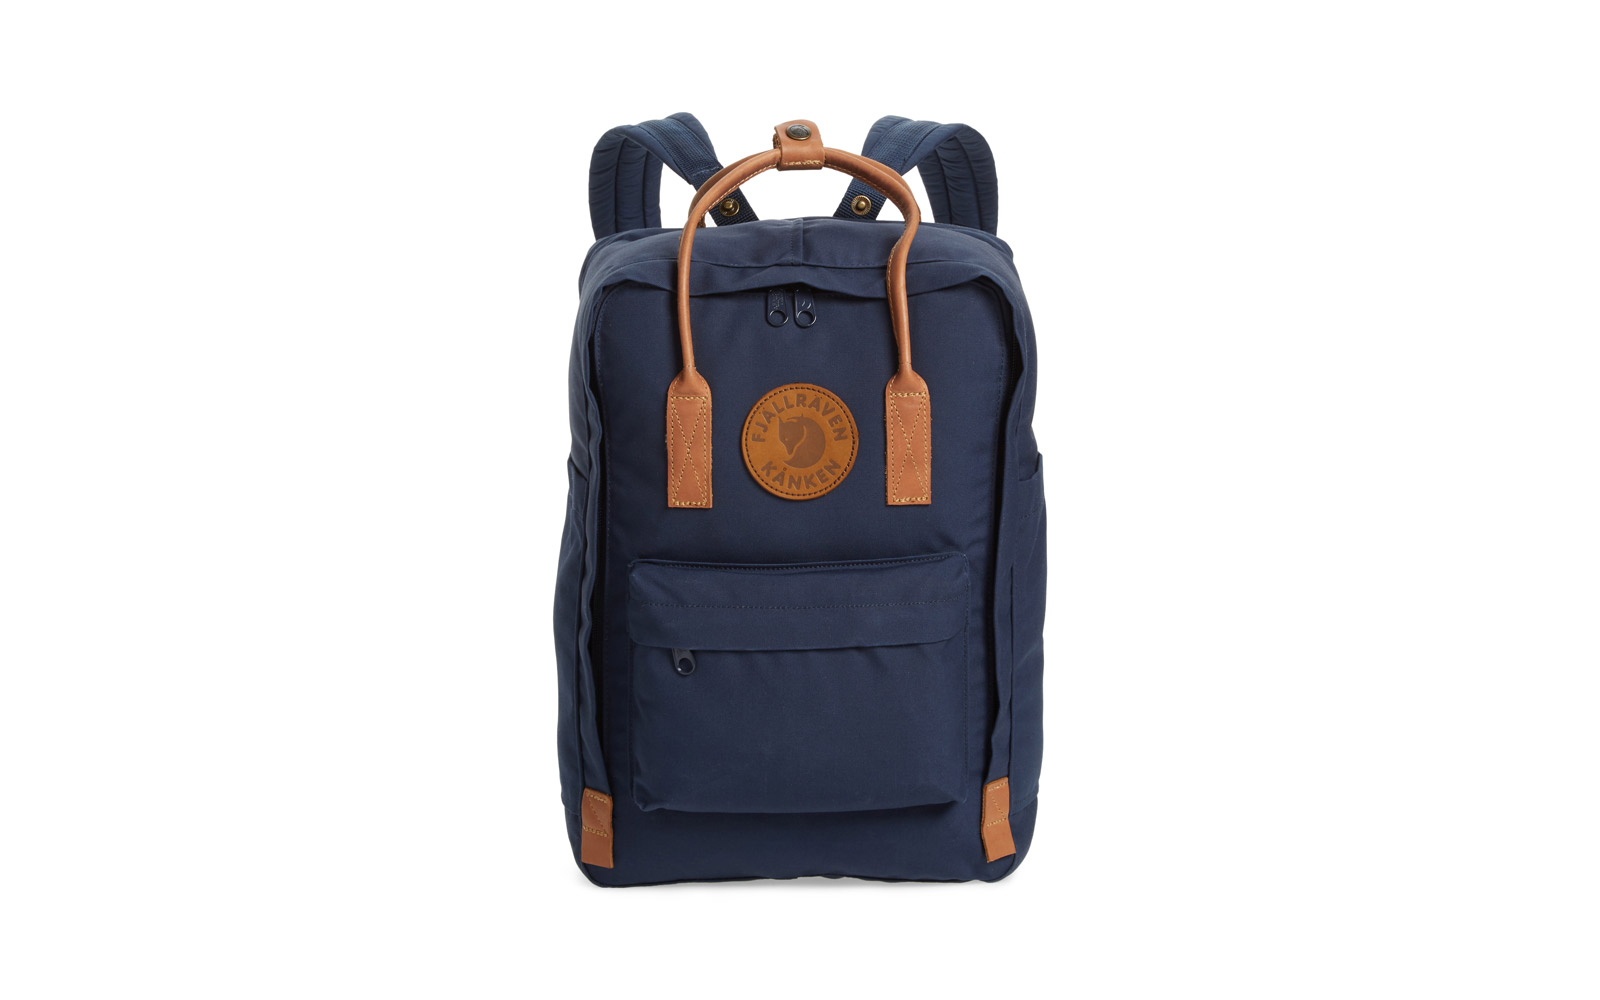 0626c39b0baa The Best Laptop Backpacks for Travel, According to Frequent Fliers ...